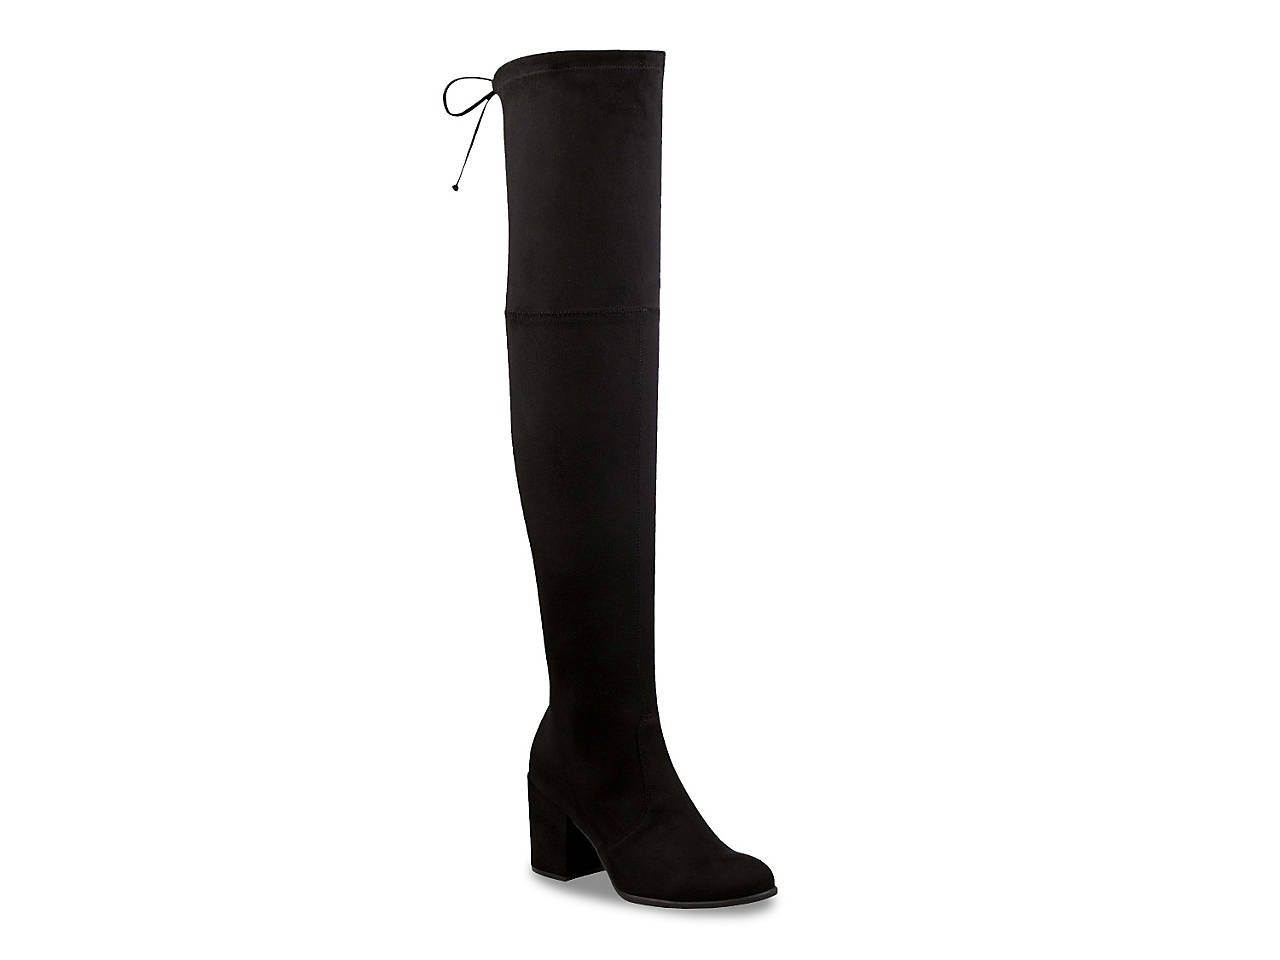 0ece1207681 Unisa Dedrii Wide Calf Over The Knee Boot Women s Shoes